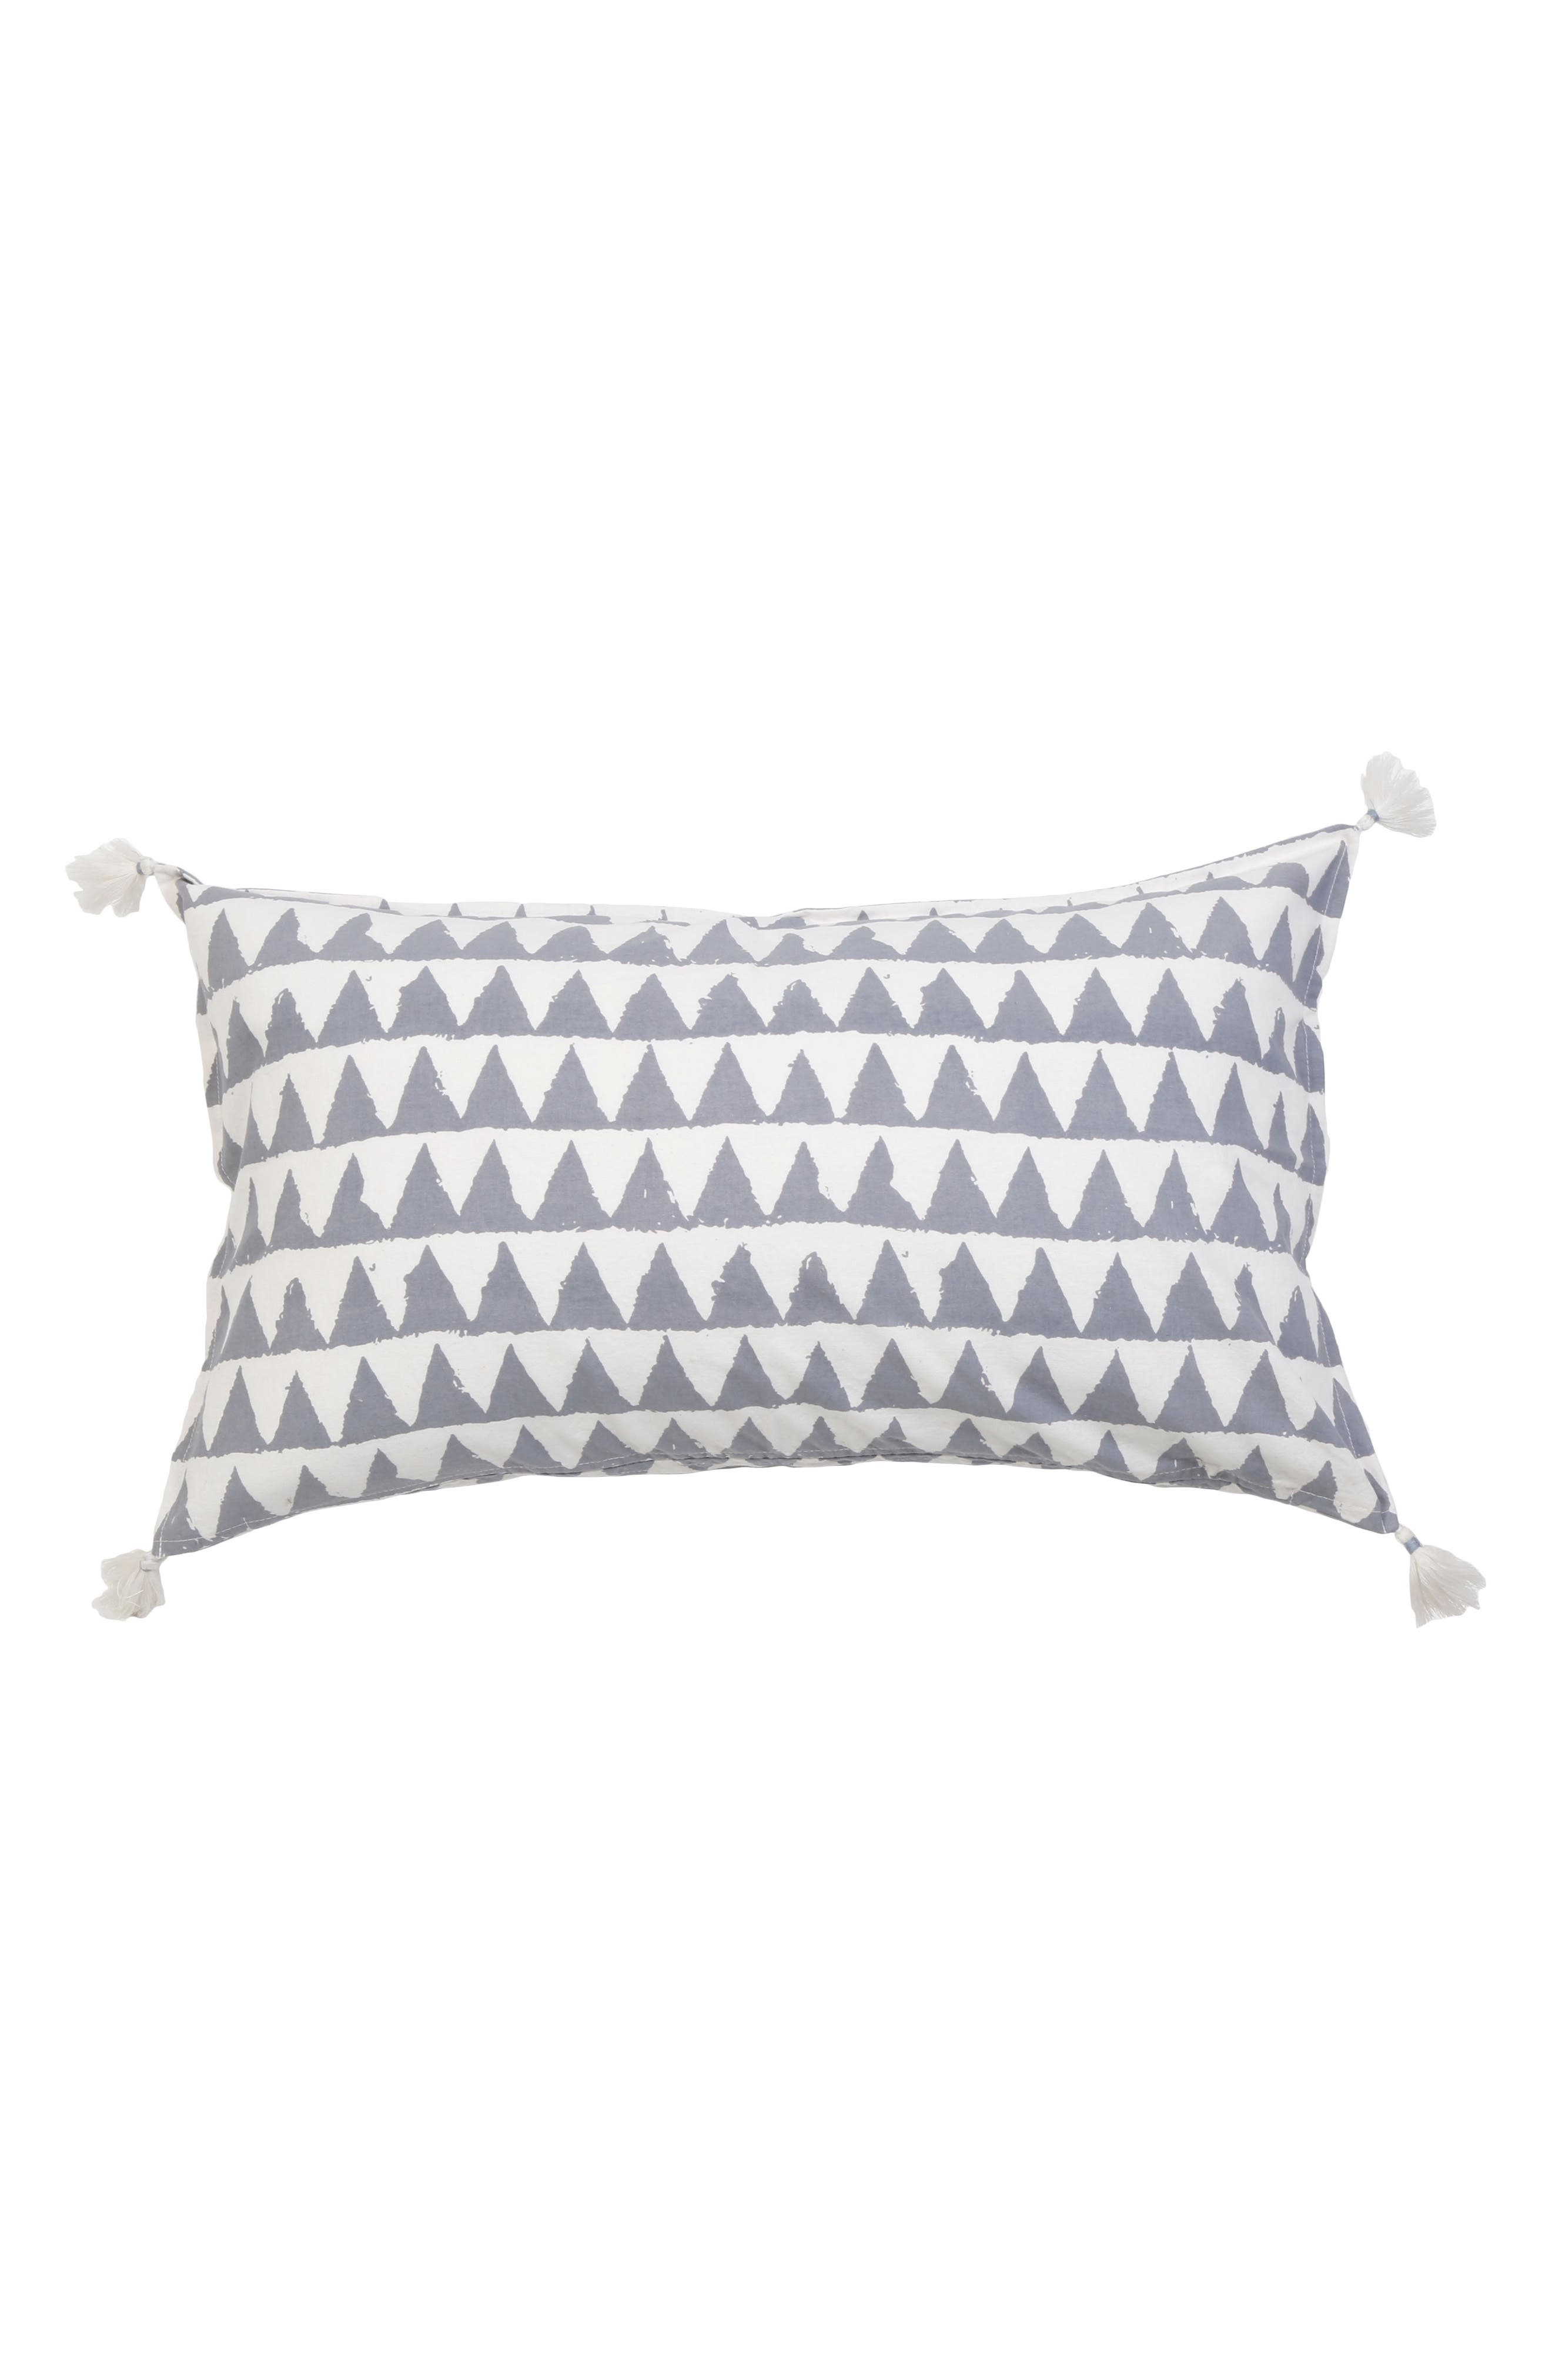 Summit Accent Pillow,                         Main,                         color,